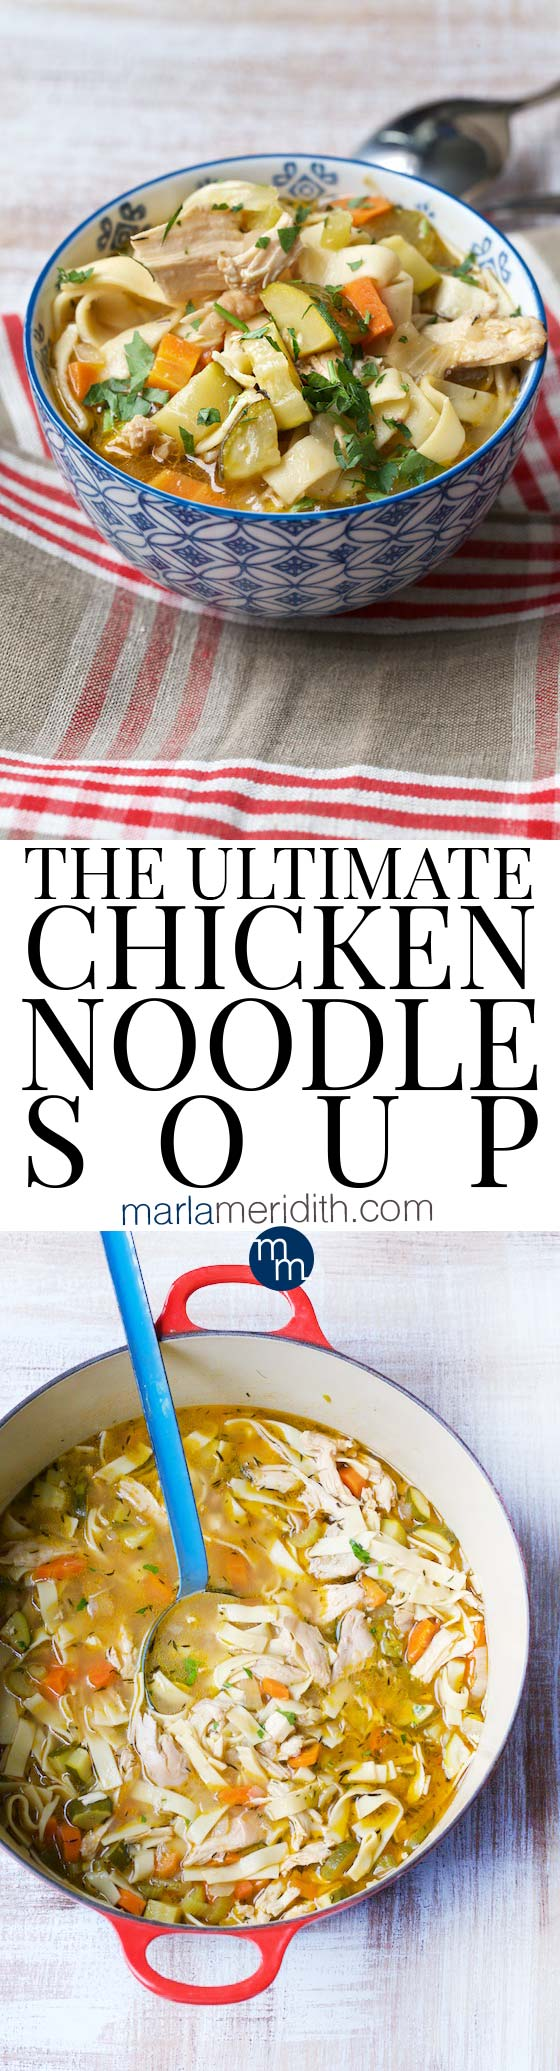 THE ULTIMATE CHICKEN NOODLE SOUP: Nothing says winter more than a comforting bowl of delicious soup. This recipe will become your go-to favorite as soon as you try it! MarlaMeridith.com #soup #recipe